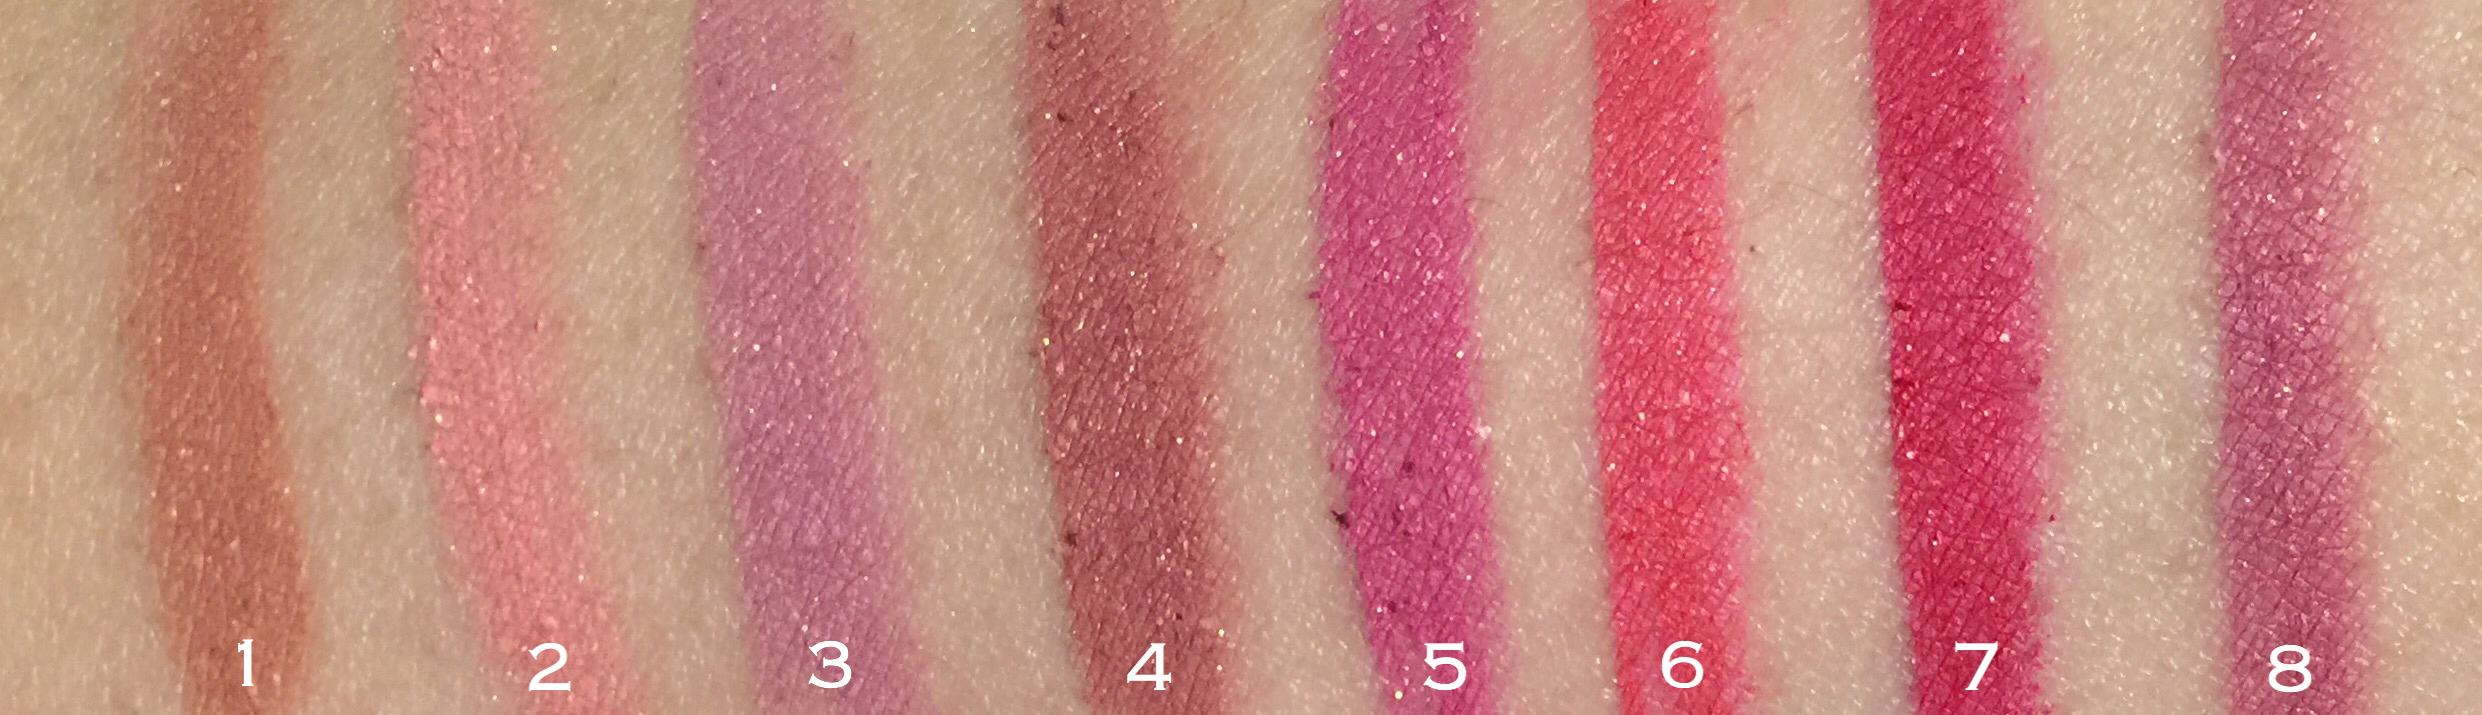 Tom Ford Lip Contour Duo - Lip Shaper swatches